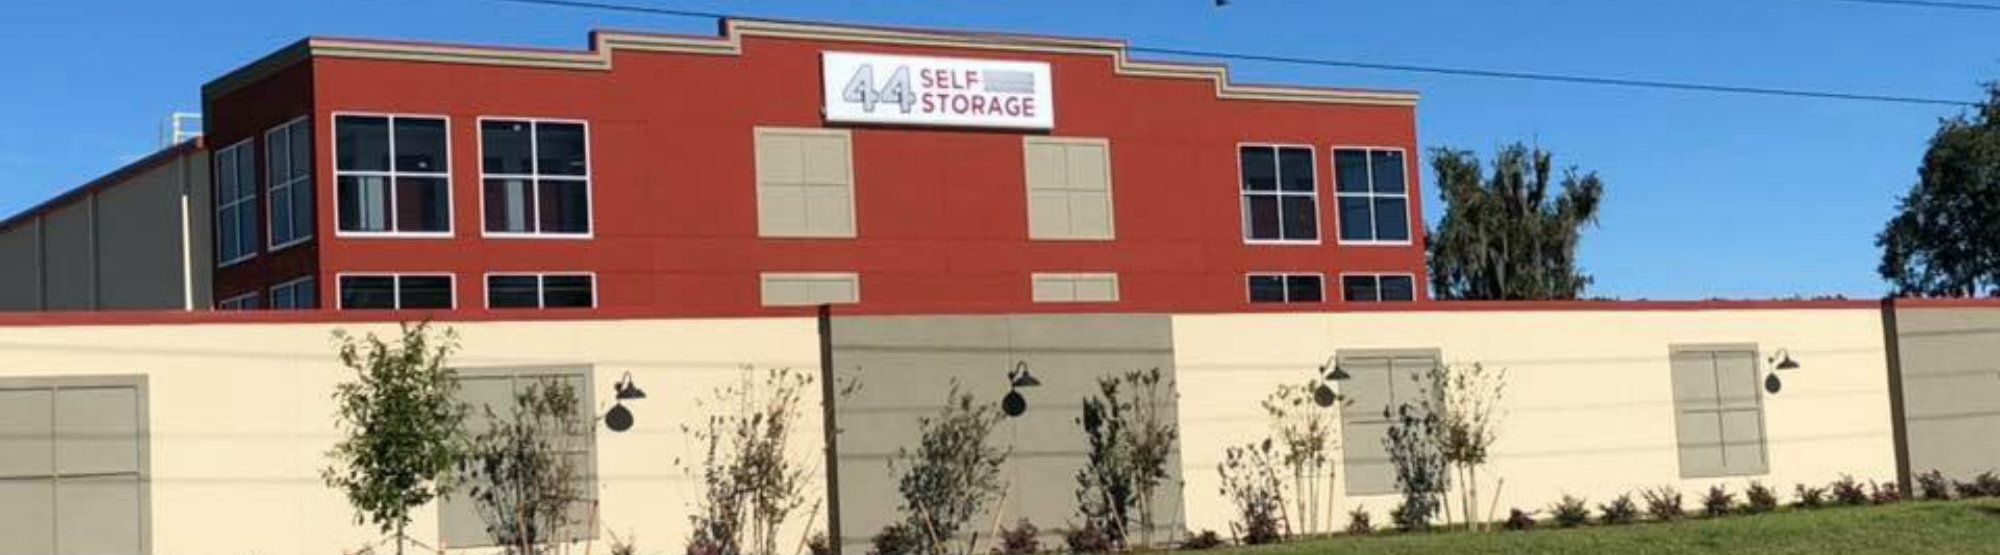 Self Storage in Wildwood, FL